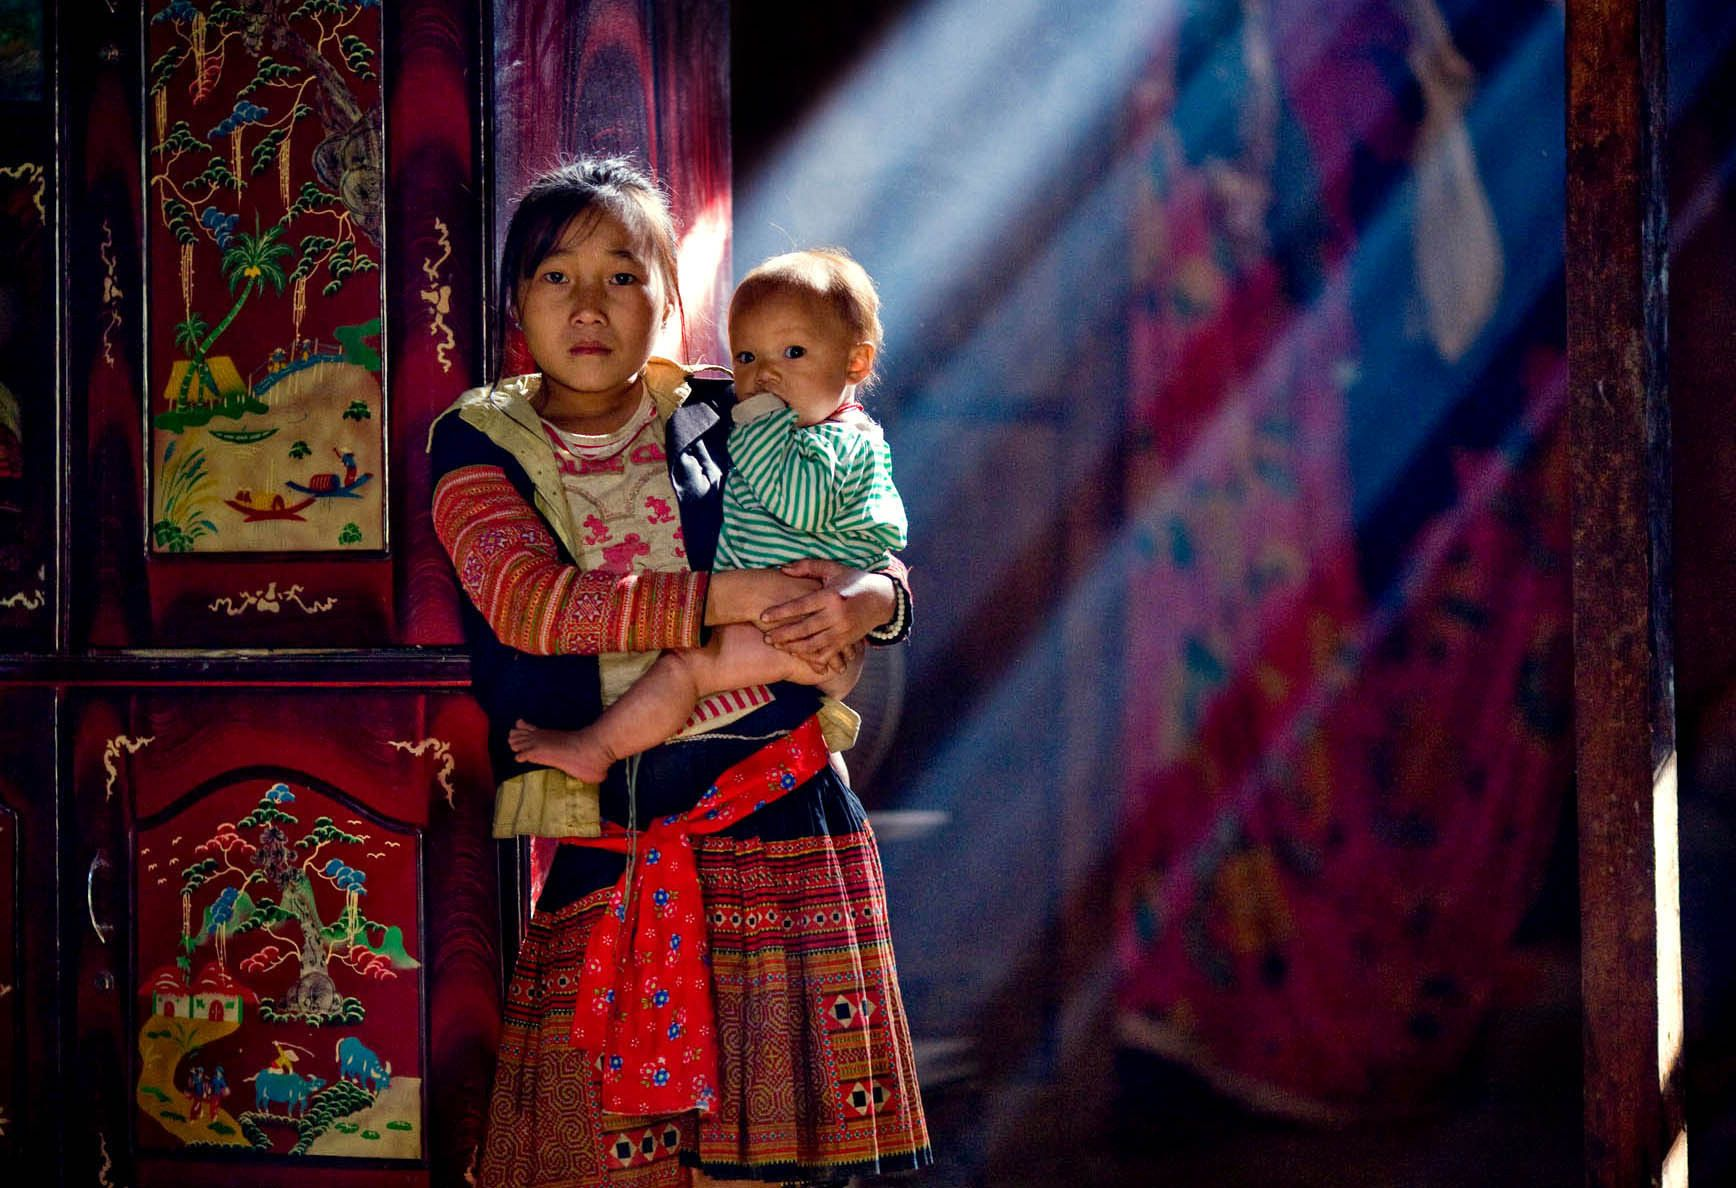 Portriat of a Hmong Family